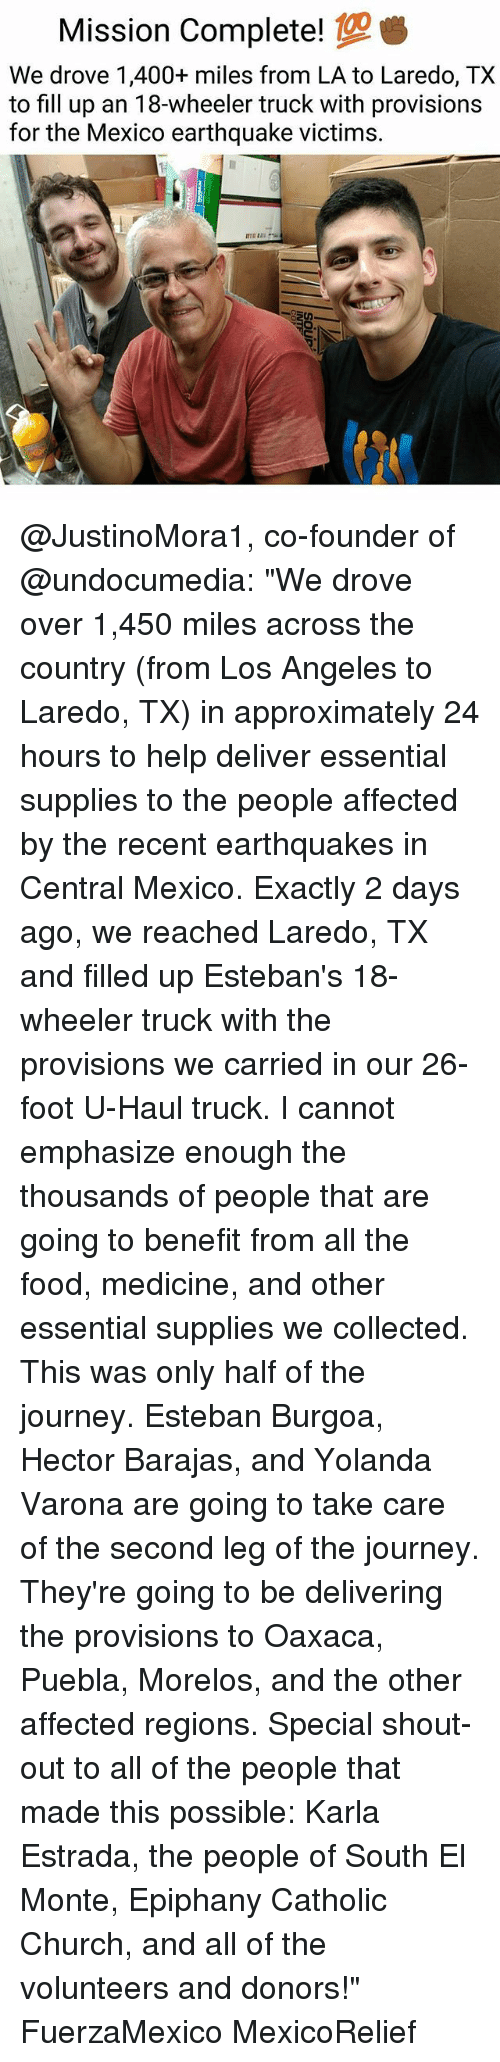 """esteban: Mission Complete!  We drove 1,400+ miles from LA to Laredo, TX  to fill up an 18-wheeler truck with provisions  for the Mexico earthquake victims. @JustinoMora1, co-founder of @undocumedia: """"We drove over 1,450 miles across the country (from Los Angeles to Laredo, TX) in approximately 24 hours to help deliver essential supplies to the people affected by the recent earthquakes in Central Mexico. Exactly 2 days ago, we reached Laredo, TX and filled up Esteban's 18-wheeler truck with the provisions we carried in our 26-foot U-Haul truck. I cannot emphasize enough the thousands of people that are going to benefit from all the food, medicine, and other essential supplies we collected. This was only half of the journey. Esteban Burgoa, Hector Barajas, and Yolanda Varona are going to take care of the second leg of the journey. They're going to be delivering the provisions to Oaxaca, Puebla, Morelos, and the other affected regions. Special shout-out to all of the people that made this possible: Karla Estrada, the people of South El Monte, Epiphany Catholic Church, and all of the volunteers and donors!"""" FuerzaMexico MexicoRelief"""